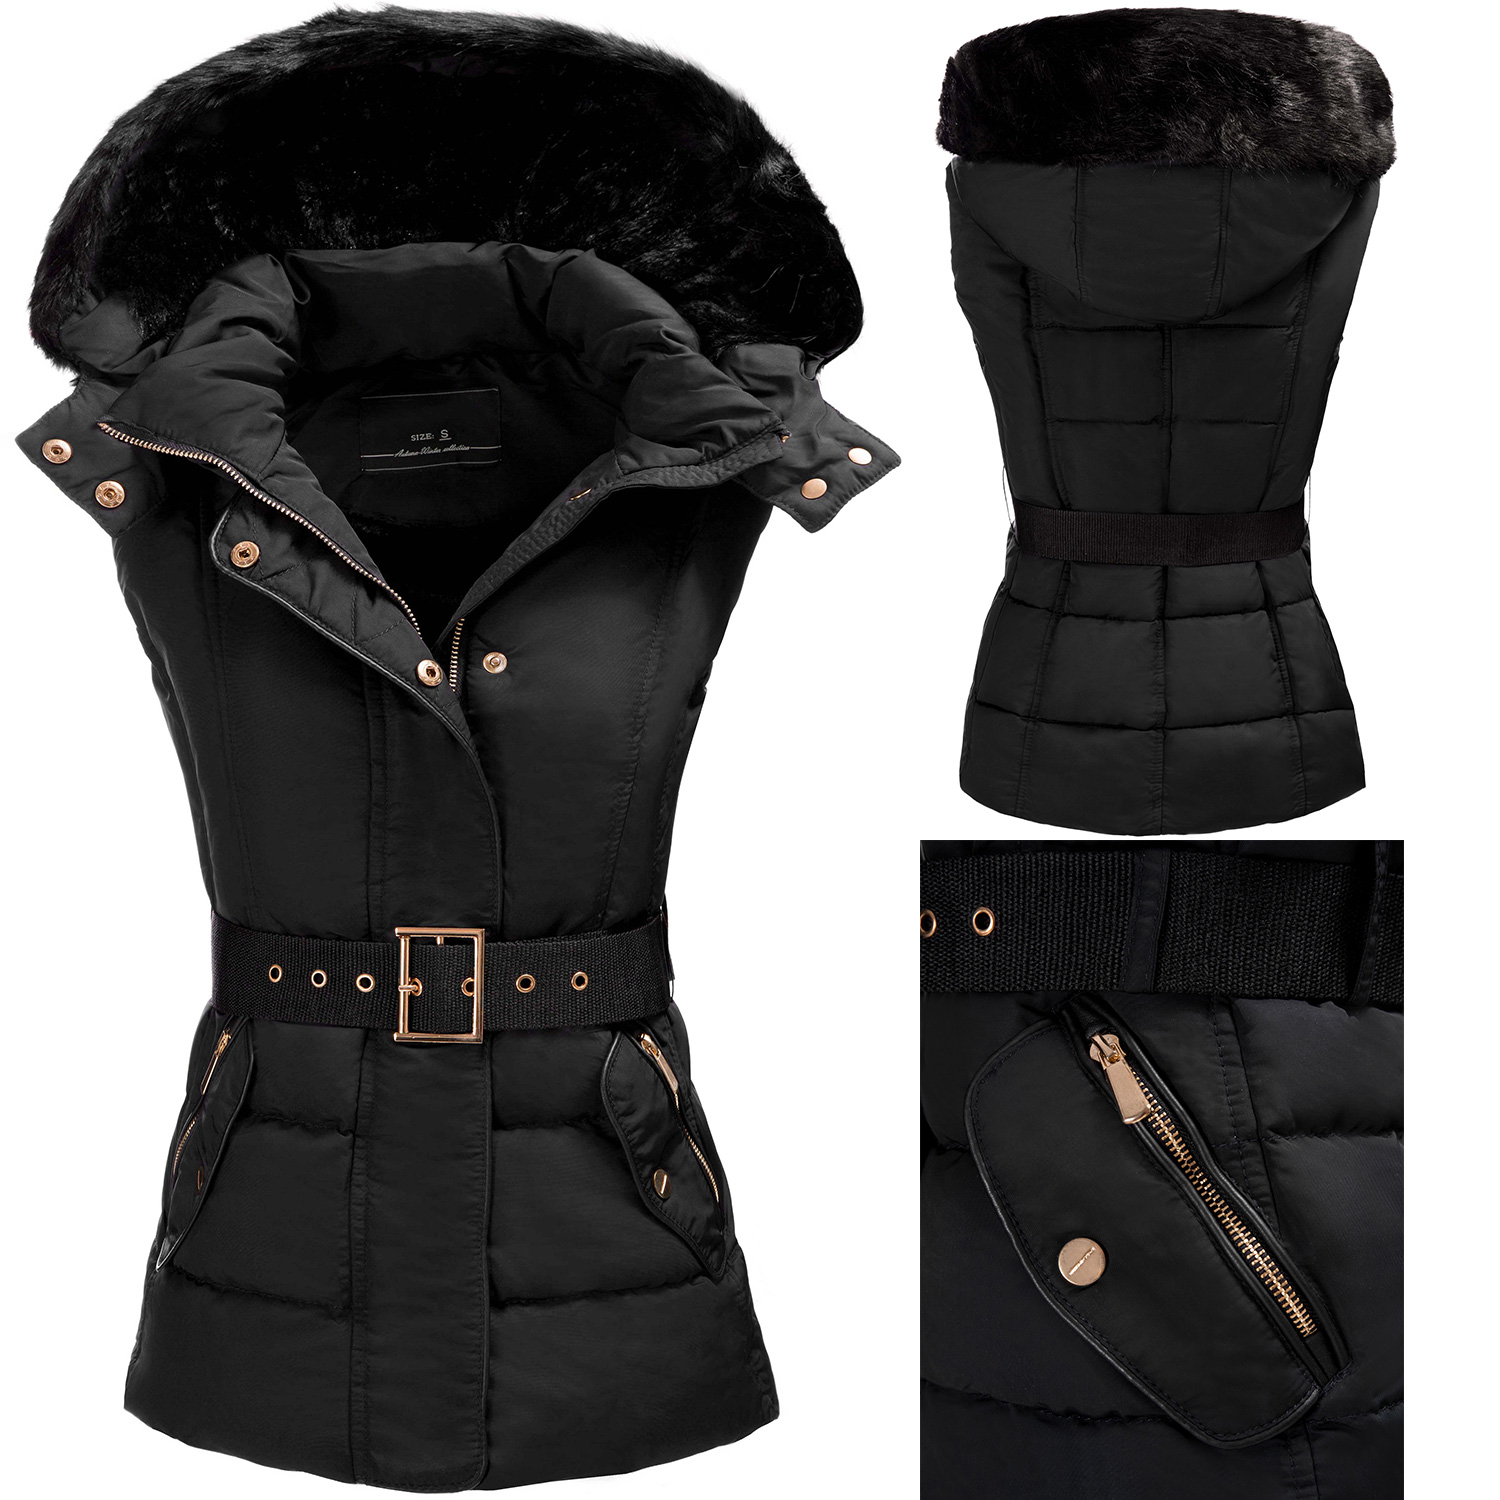 damen steppweste weste winterjacke jacke damenweste kapuze damenjacke. Black Bedroom Furniture Sets. Home Design Ideas